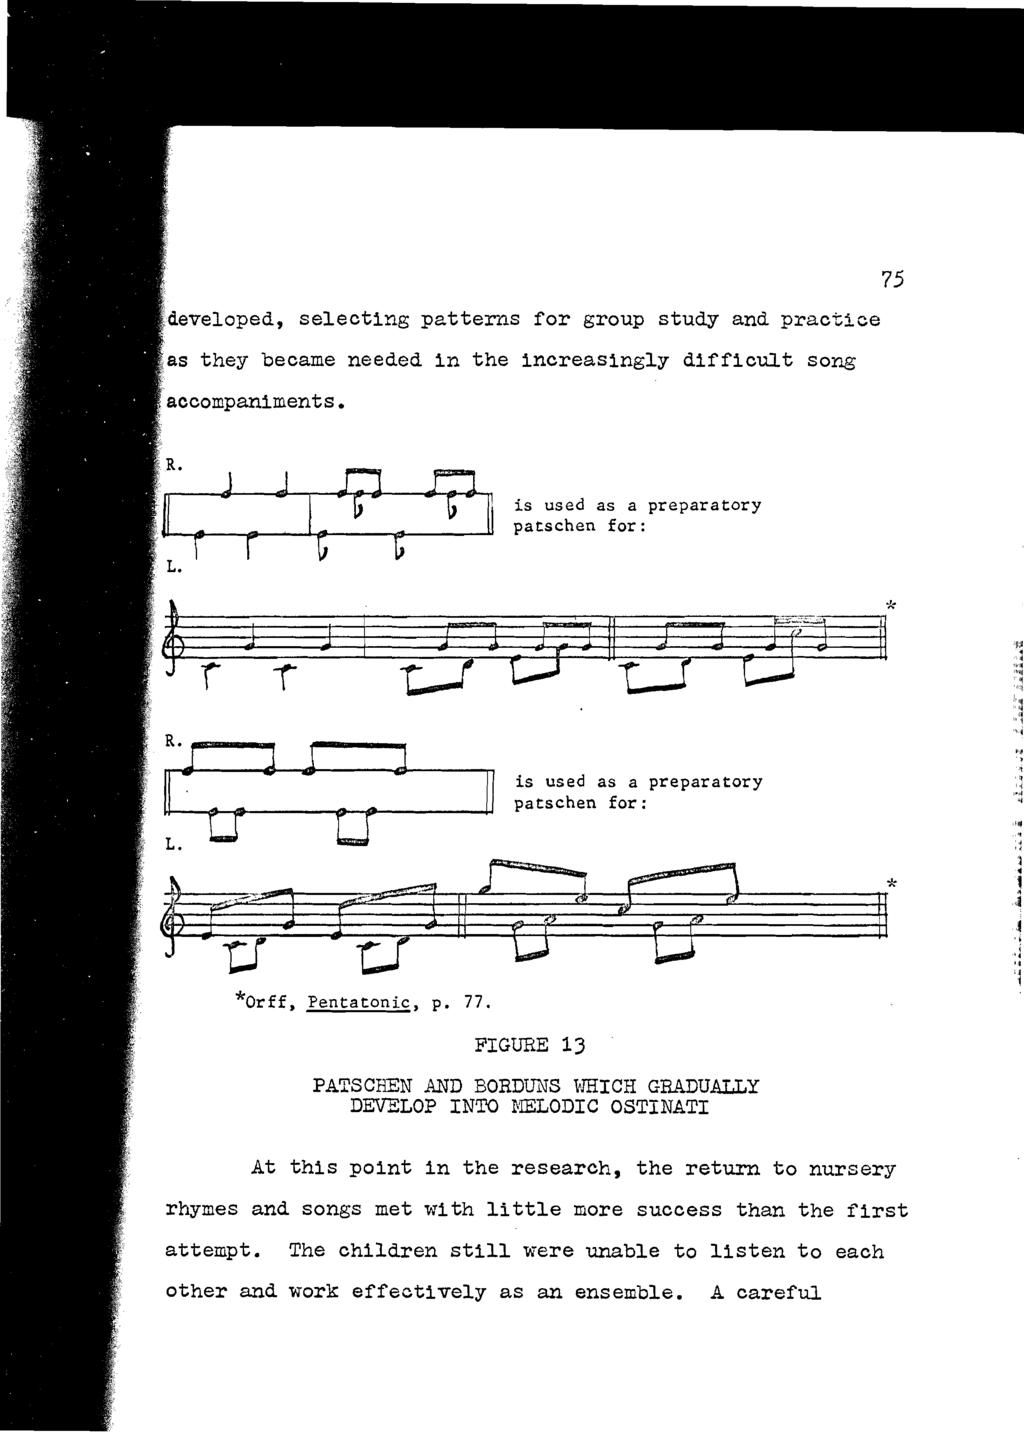 "~developed, selecting patterlls for group study and practice ~ as they became needed in the increasingly difficult song accompaniments. 75 ~r~c:!j patschen is used as a preparatory for: ) j J- ""."